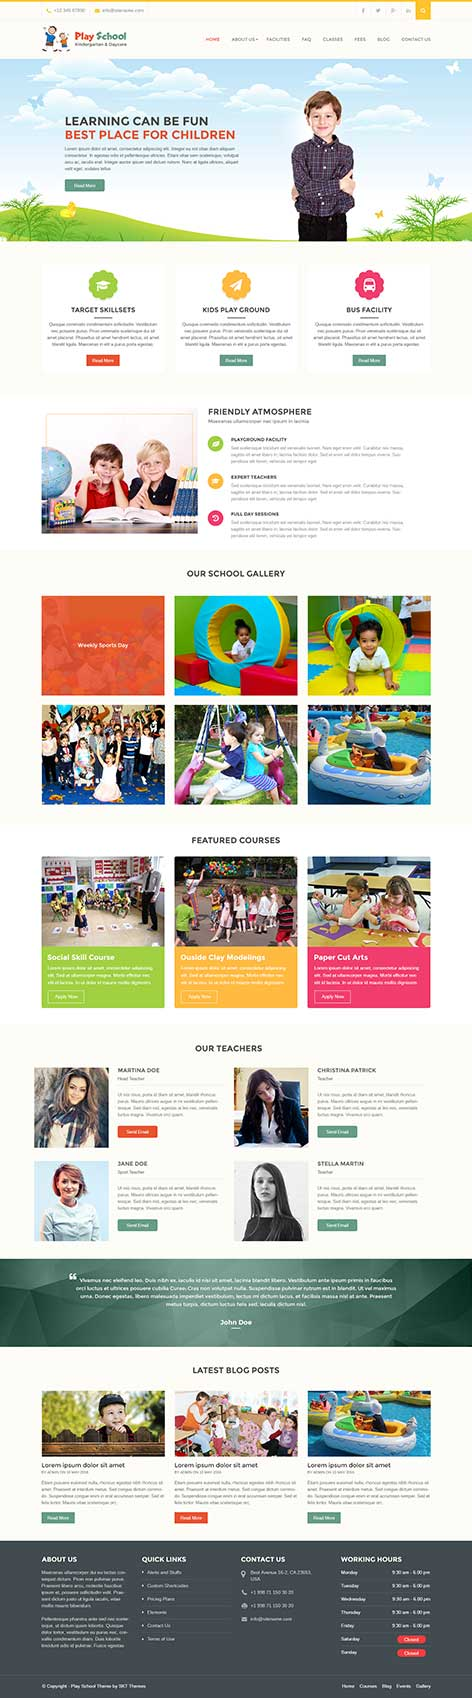 Creche school WordPress theme